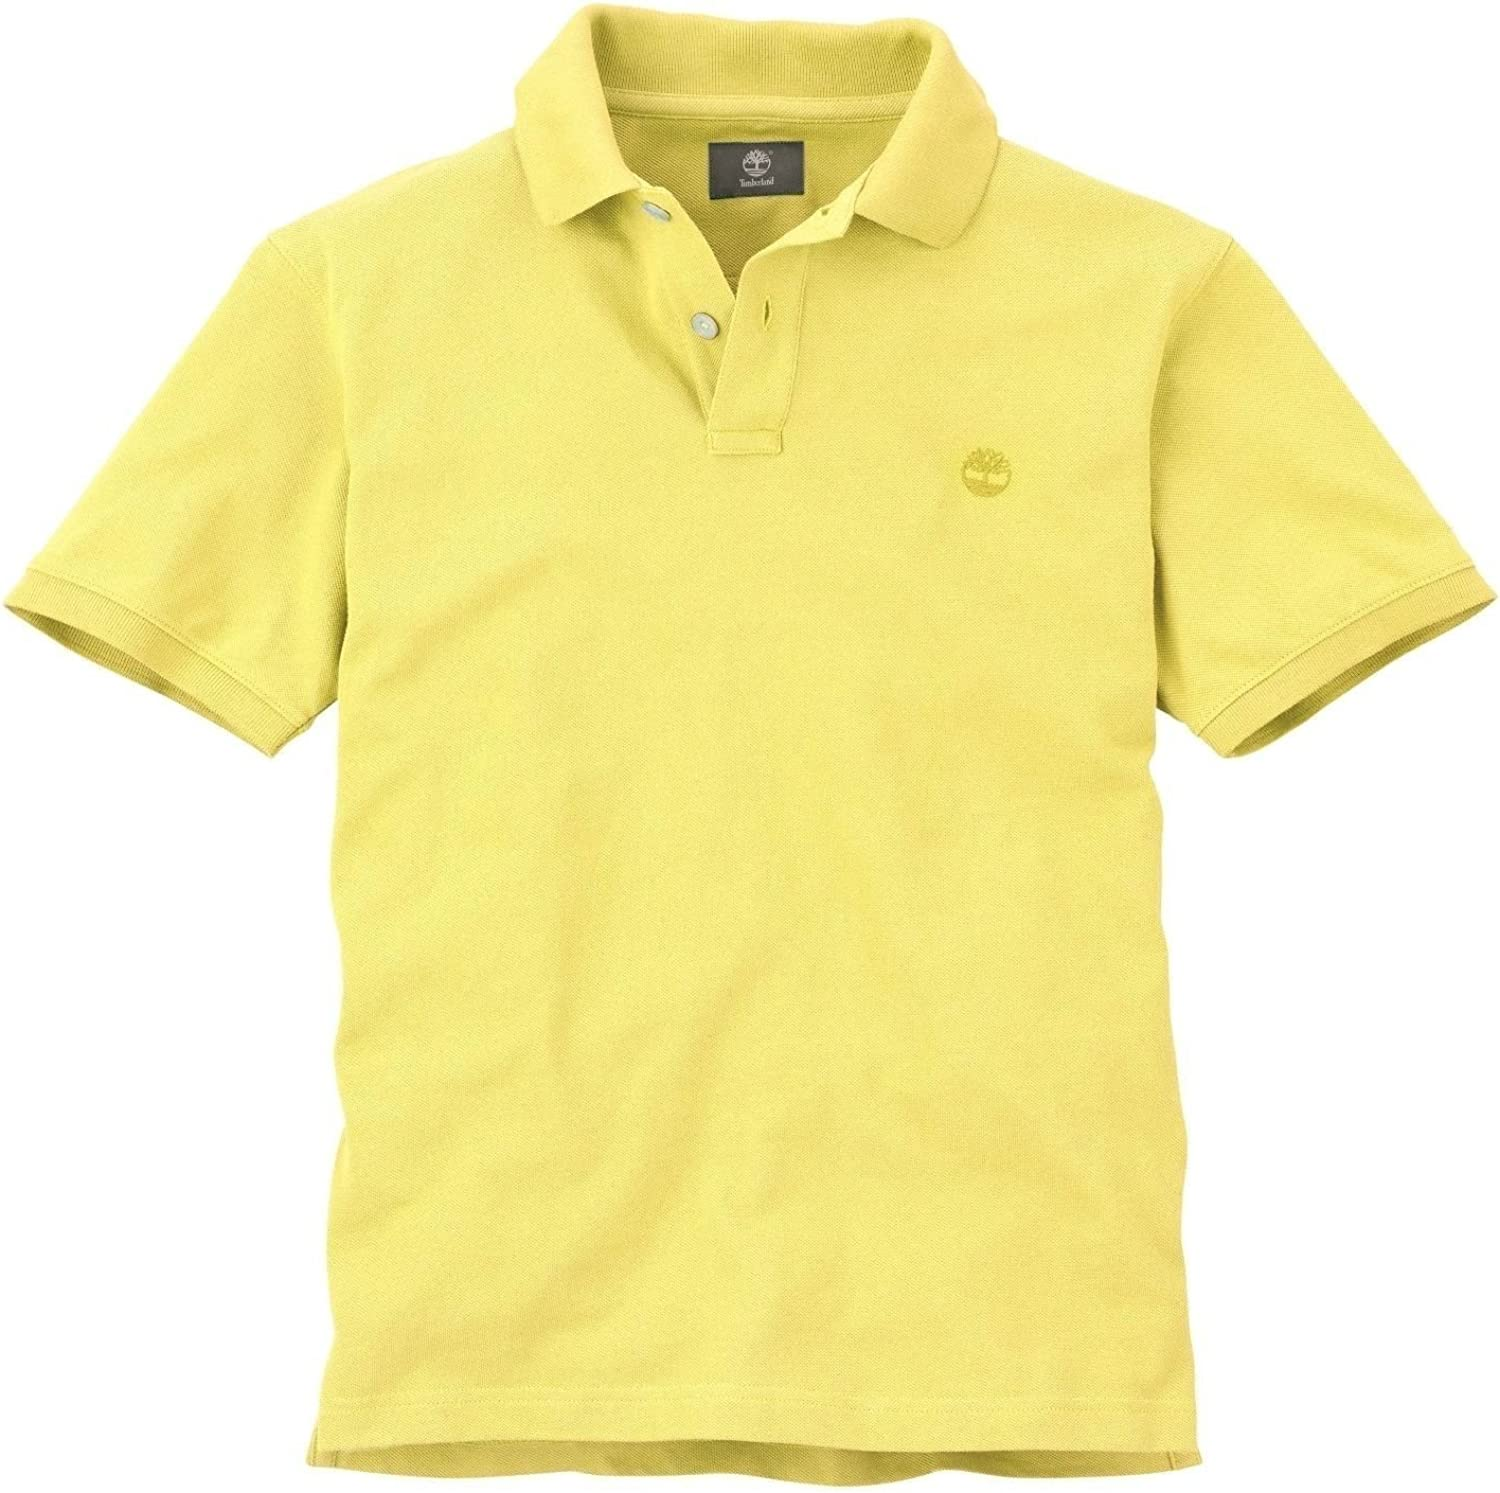 Timberland Men/'s Short Sleeve Pique 100/% Cotton Polo Shirt U Pick Color